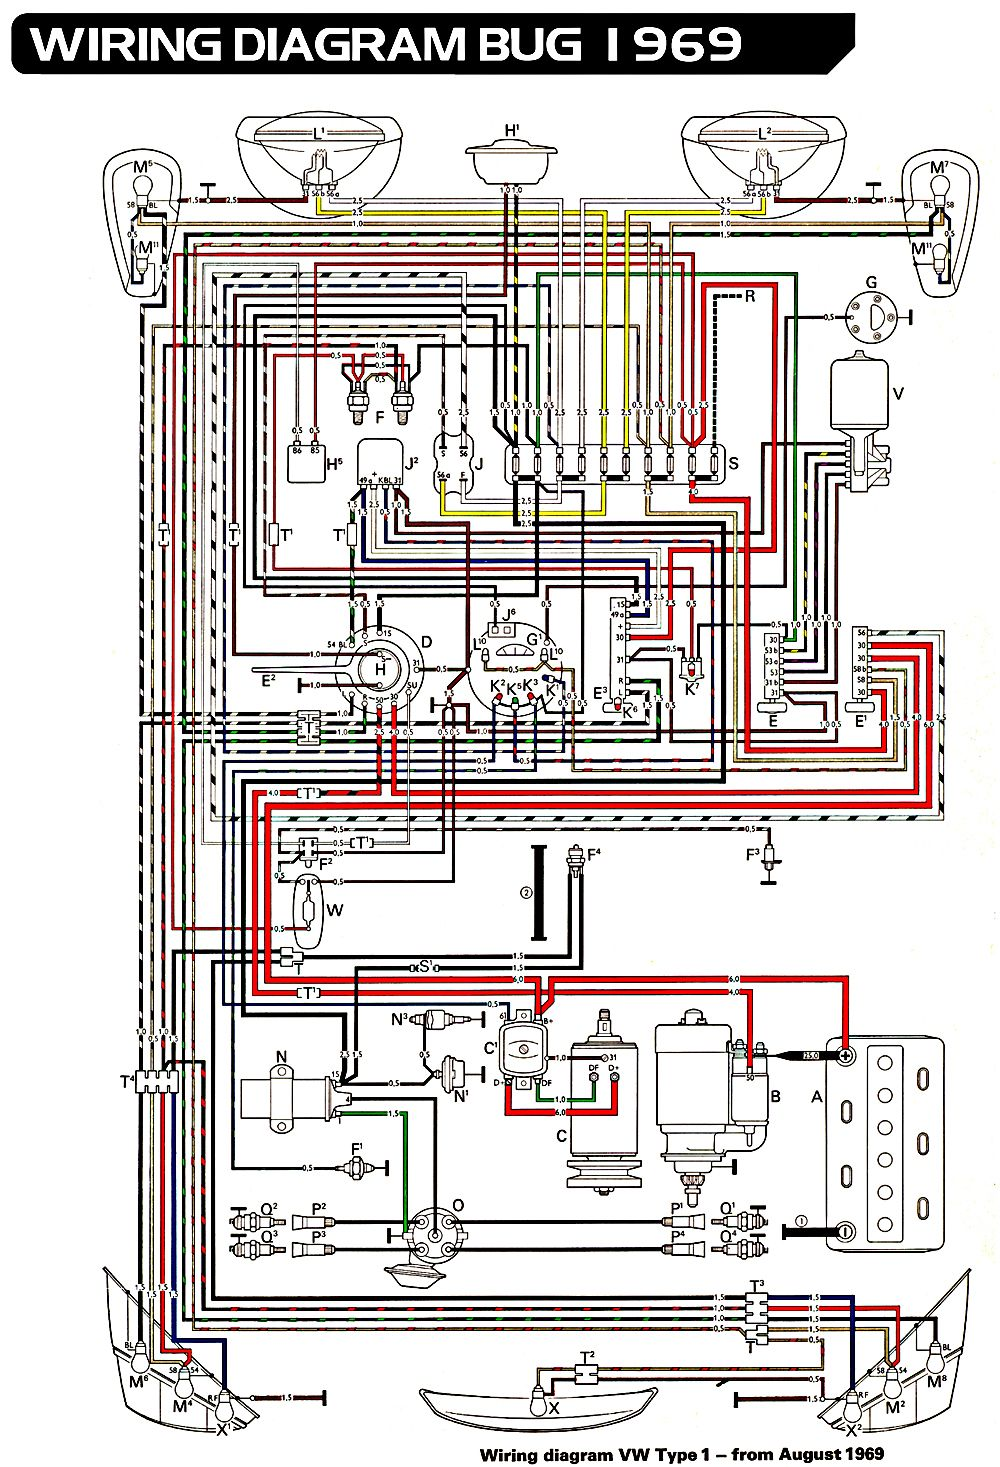 6d75c15875479254f26a32a8499d9044 volkswagen beetle wiring diagram 1966 vw beetle wiring 1970 vw beetle electrical wiring diagram at soozxer.org